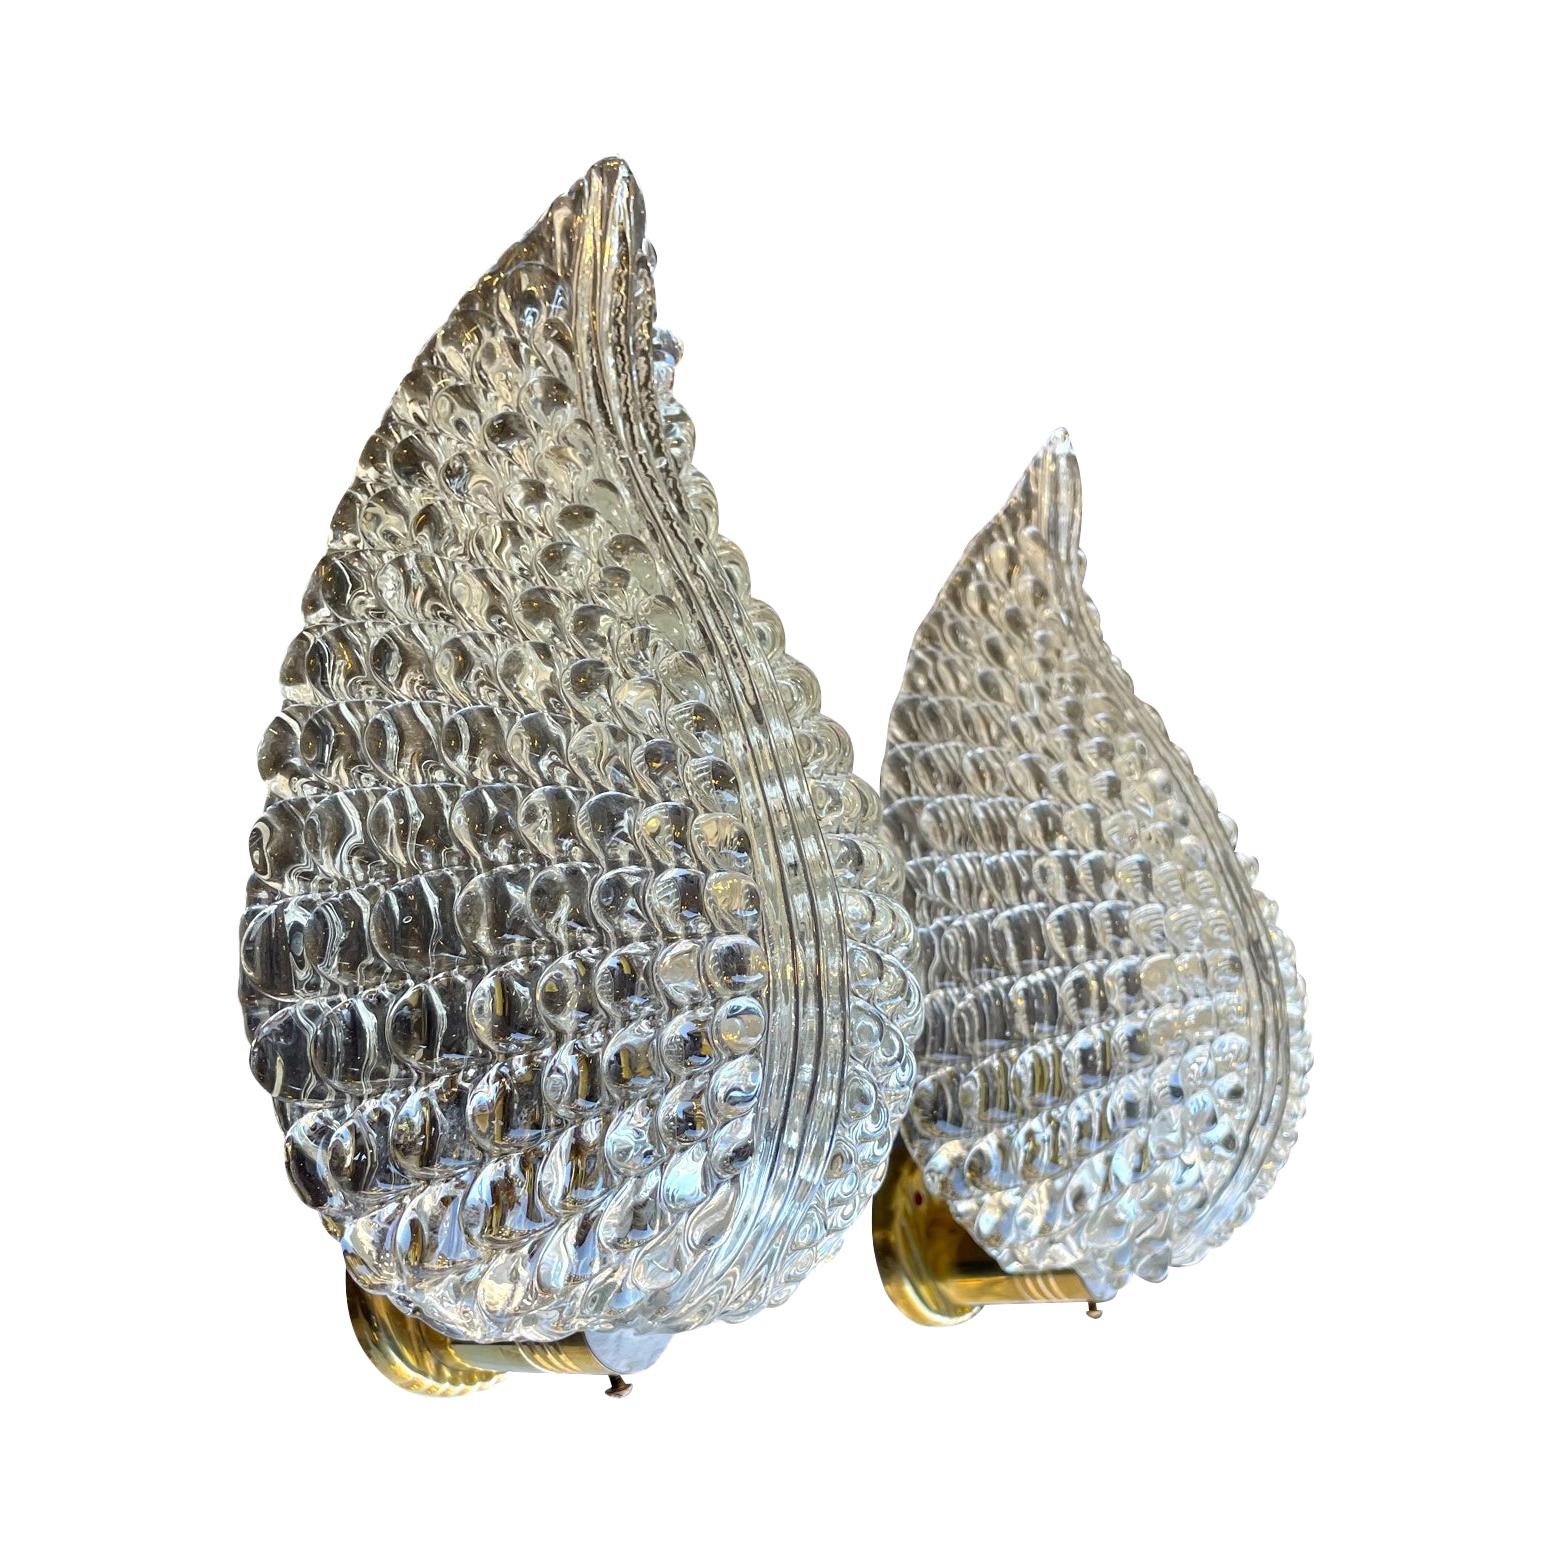 Lovely Pair of 1960s Barovier and Toso Murano Glass Leaf Wall Sconces